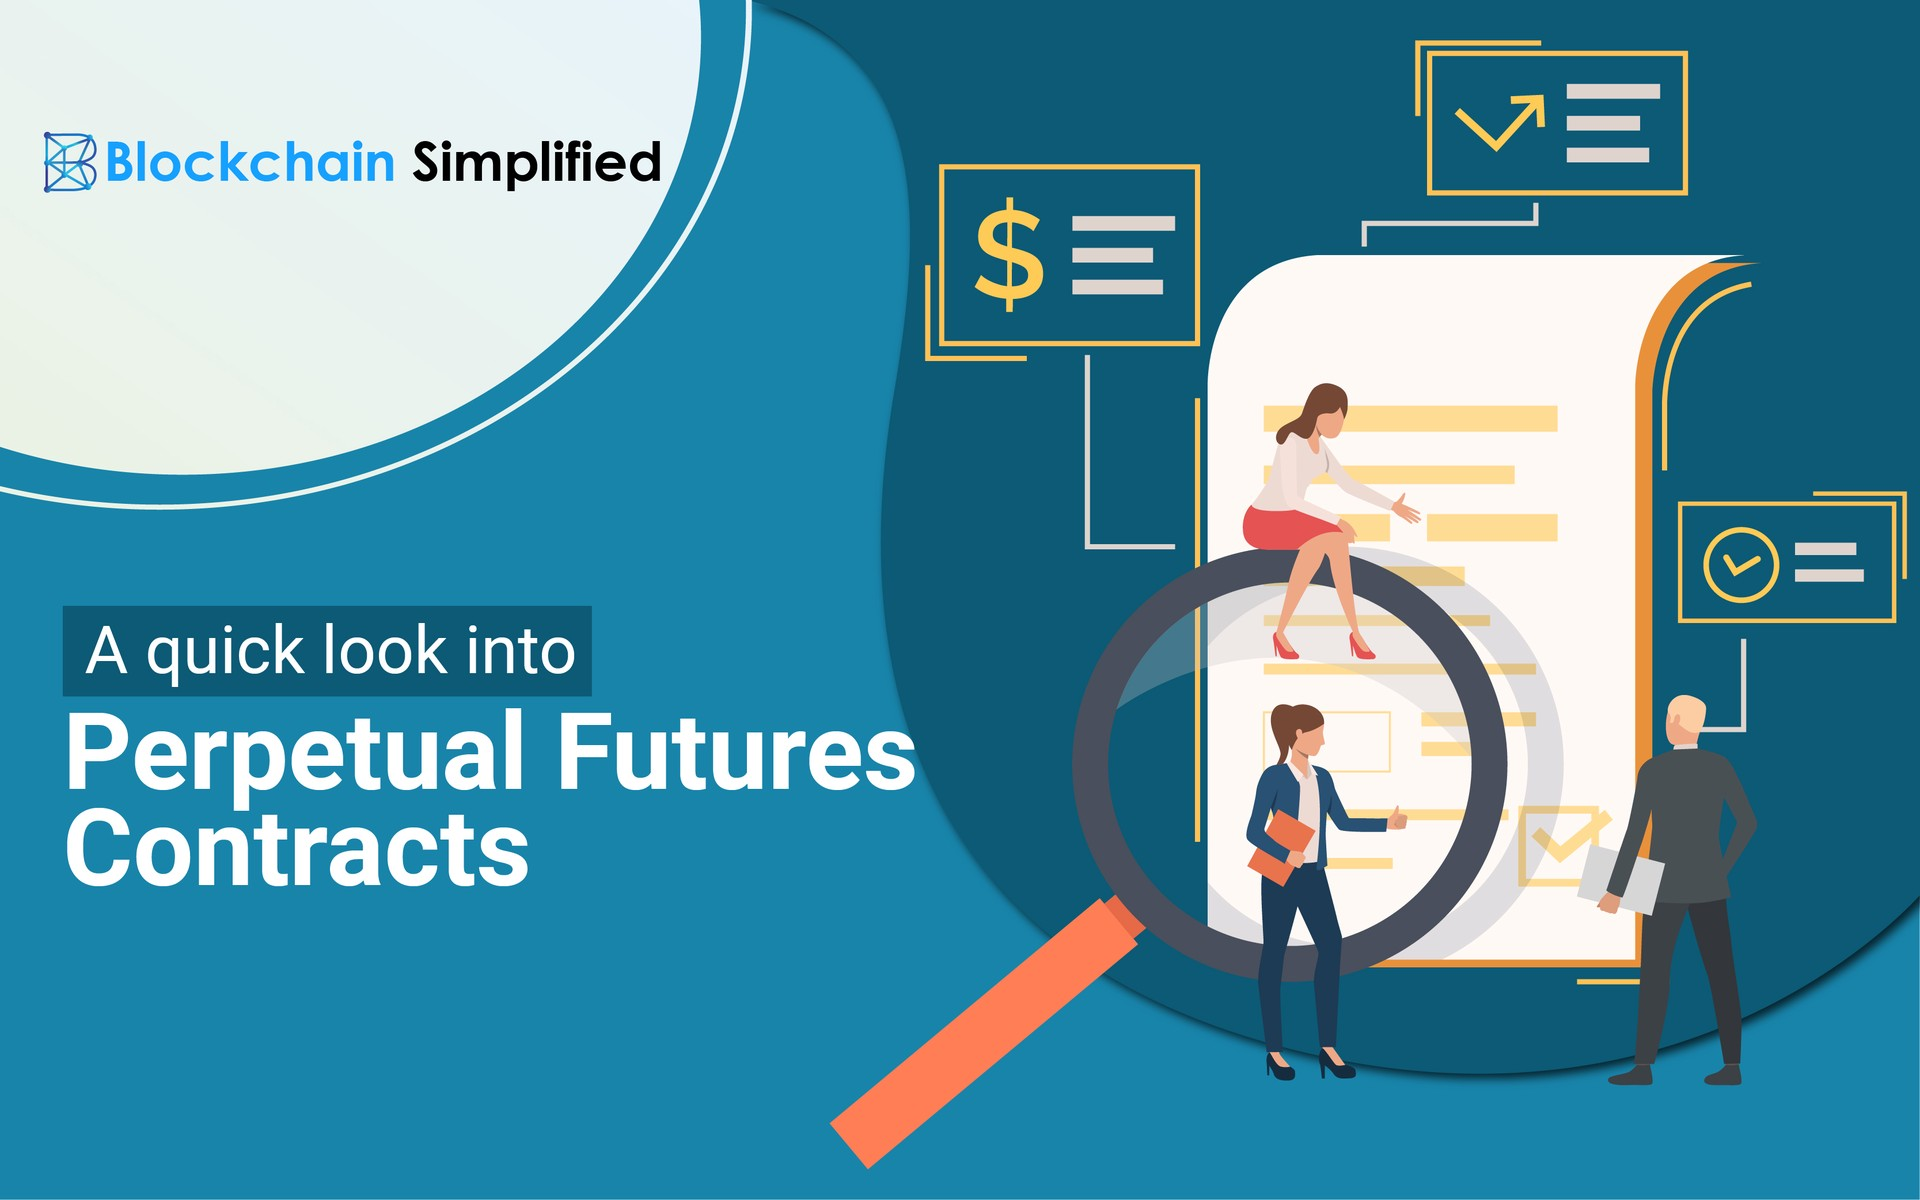 Perpetual Futures Contracts main